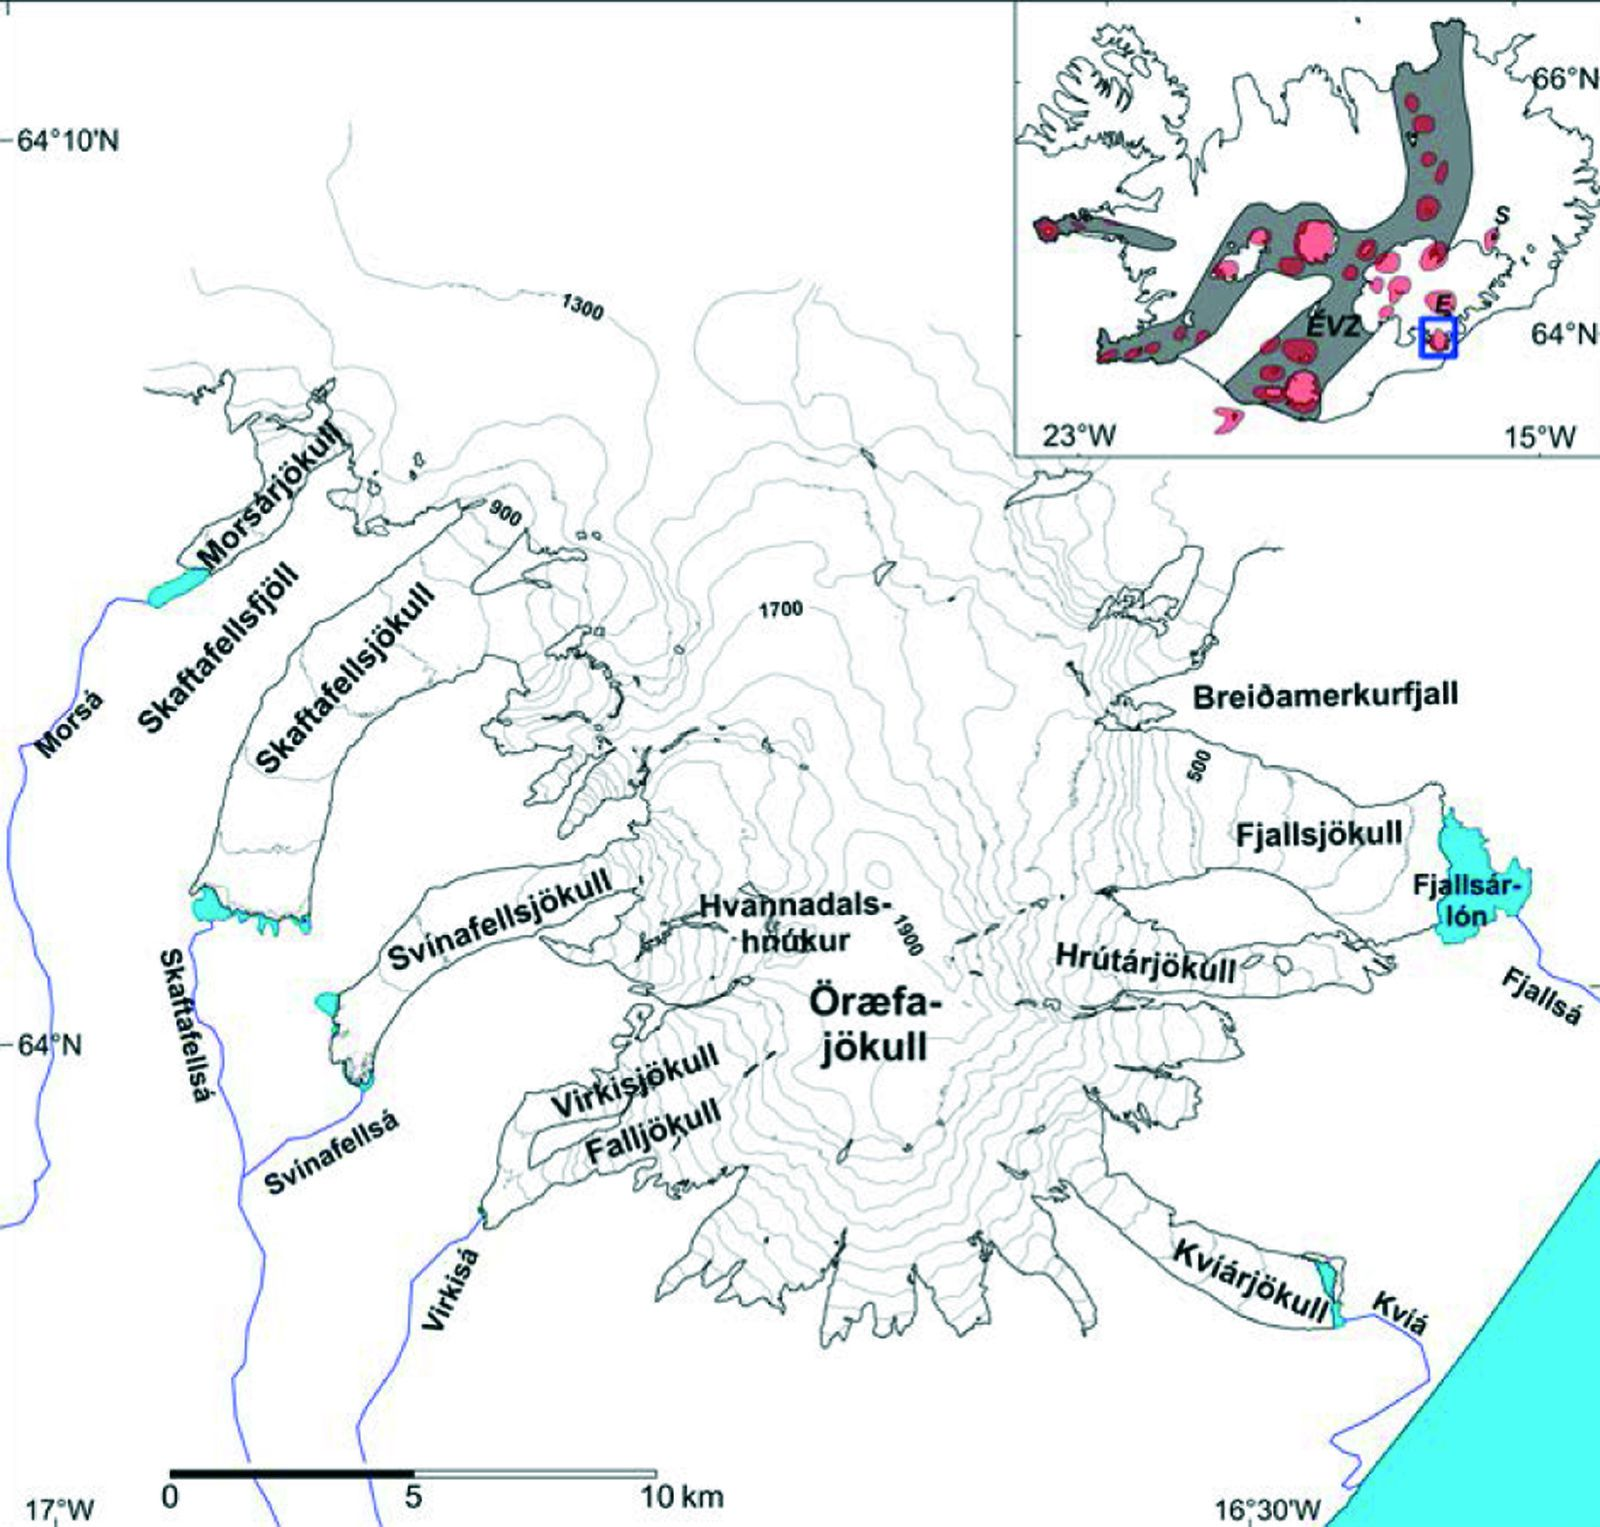 Ice Cover and Outlet Glaciers of the Öraefajökull - Doc. Removing the ice cap of Öræfajökull central volcano, SE-Iceland: Mapping and interpretation of bedrock topography, ice volumes, subglacial troughs and implications for hazards assessments Eyjólfur Magnússon, Finnur Pálsson, Helgi Björnsson and Snævarr Guðmundsson - 2014